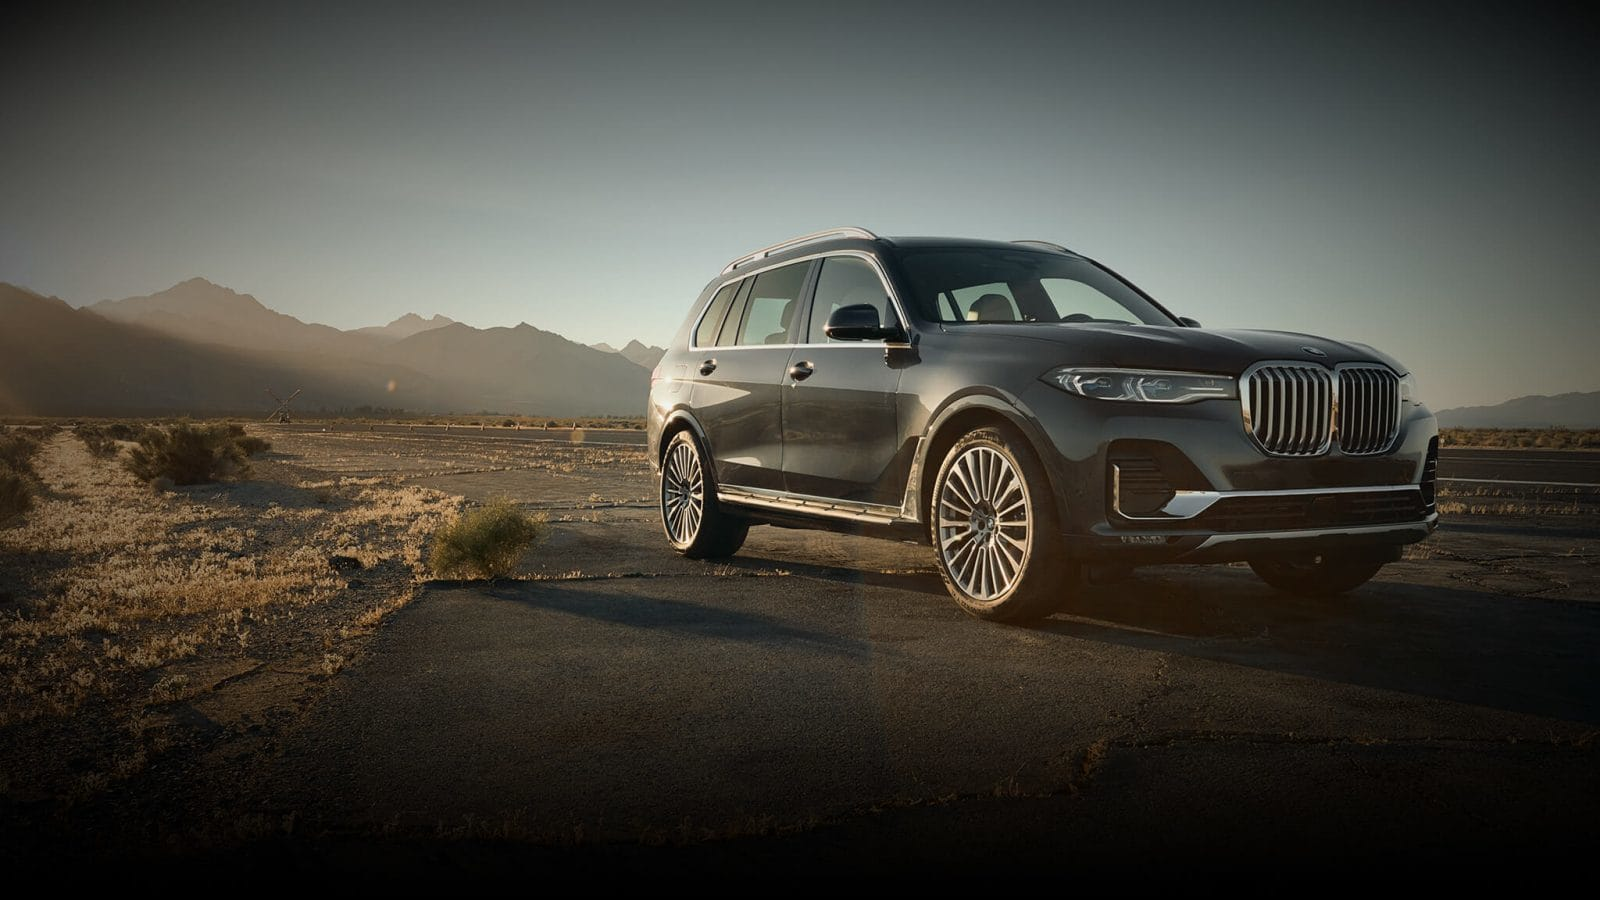 Lease A 2019 Bmw X7 Sterling Bmw The Best Rated Bmw Dealer In Oc